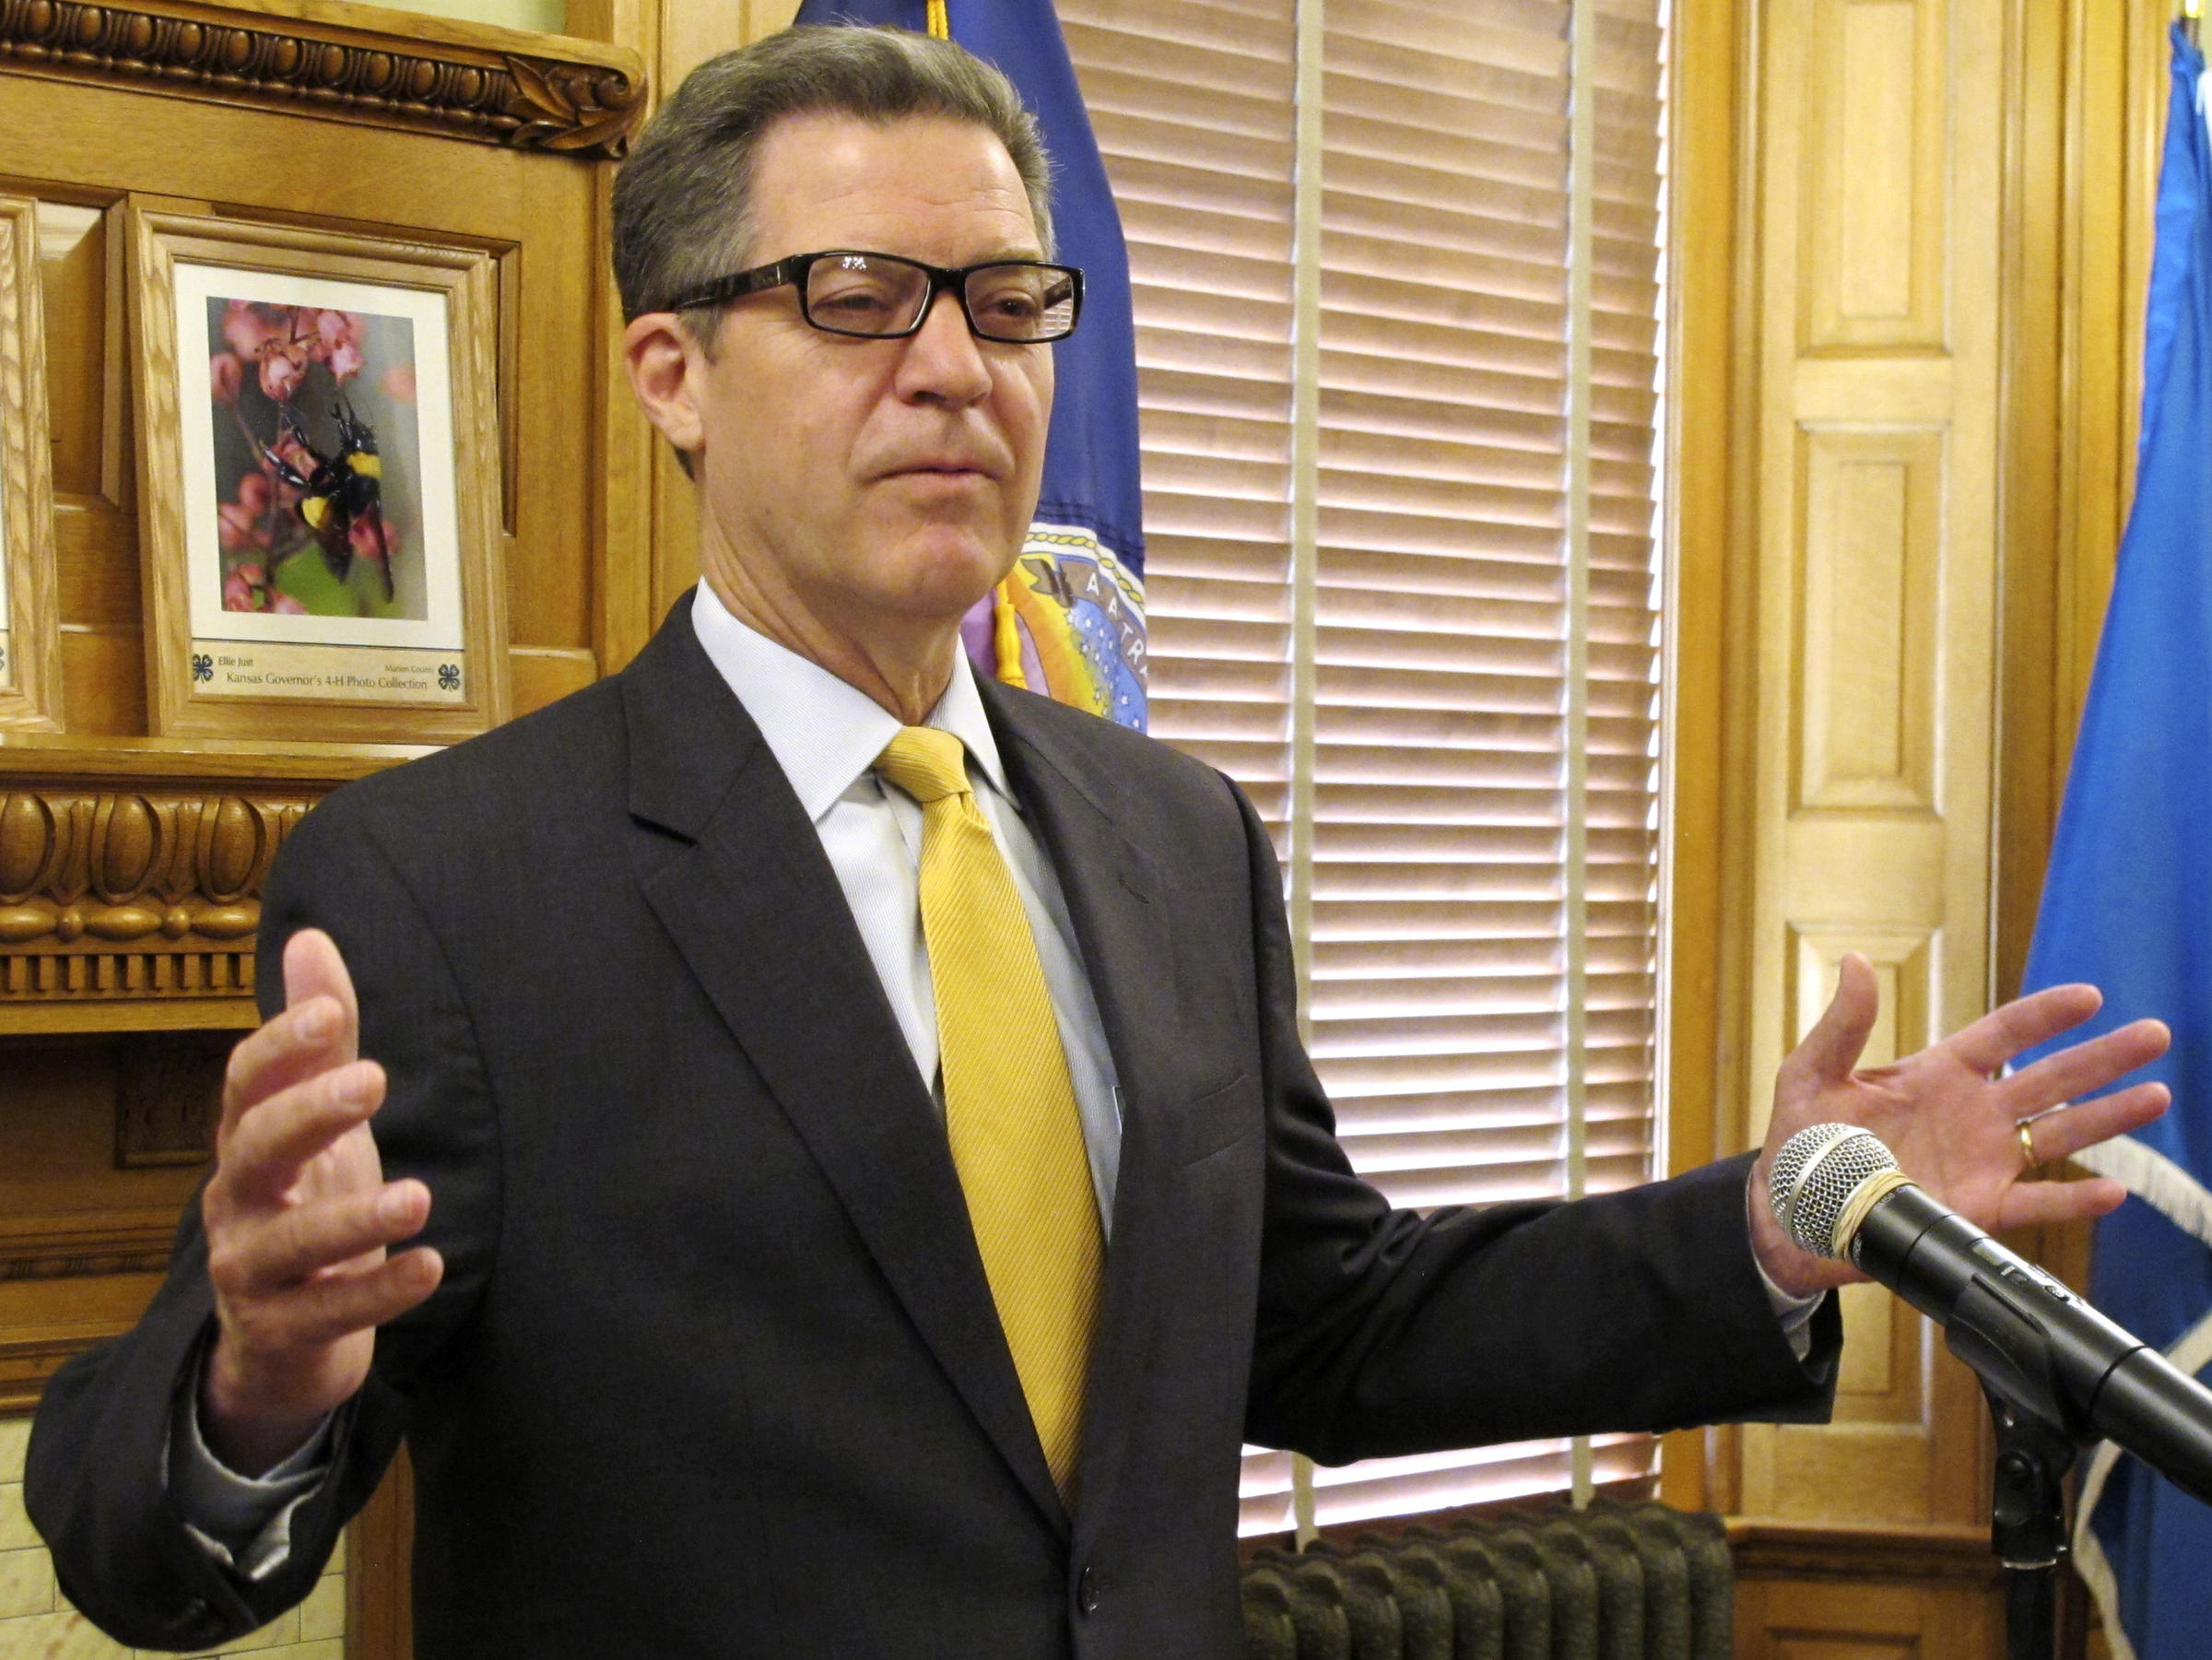 Sam Brownback Officially Leaves Kansas With the Worst Economy in the Plains